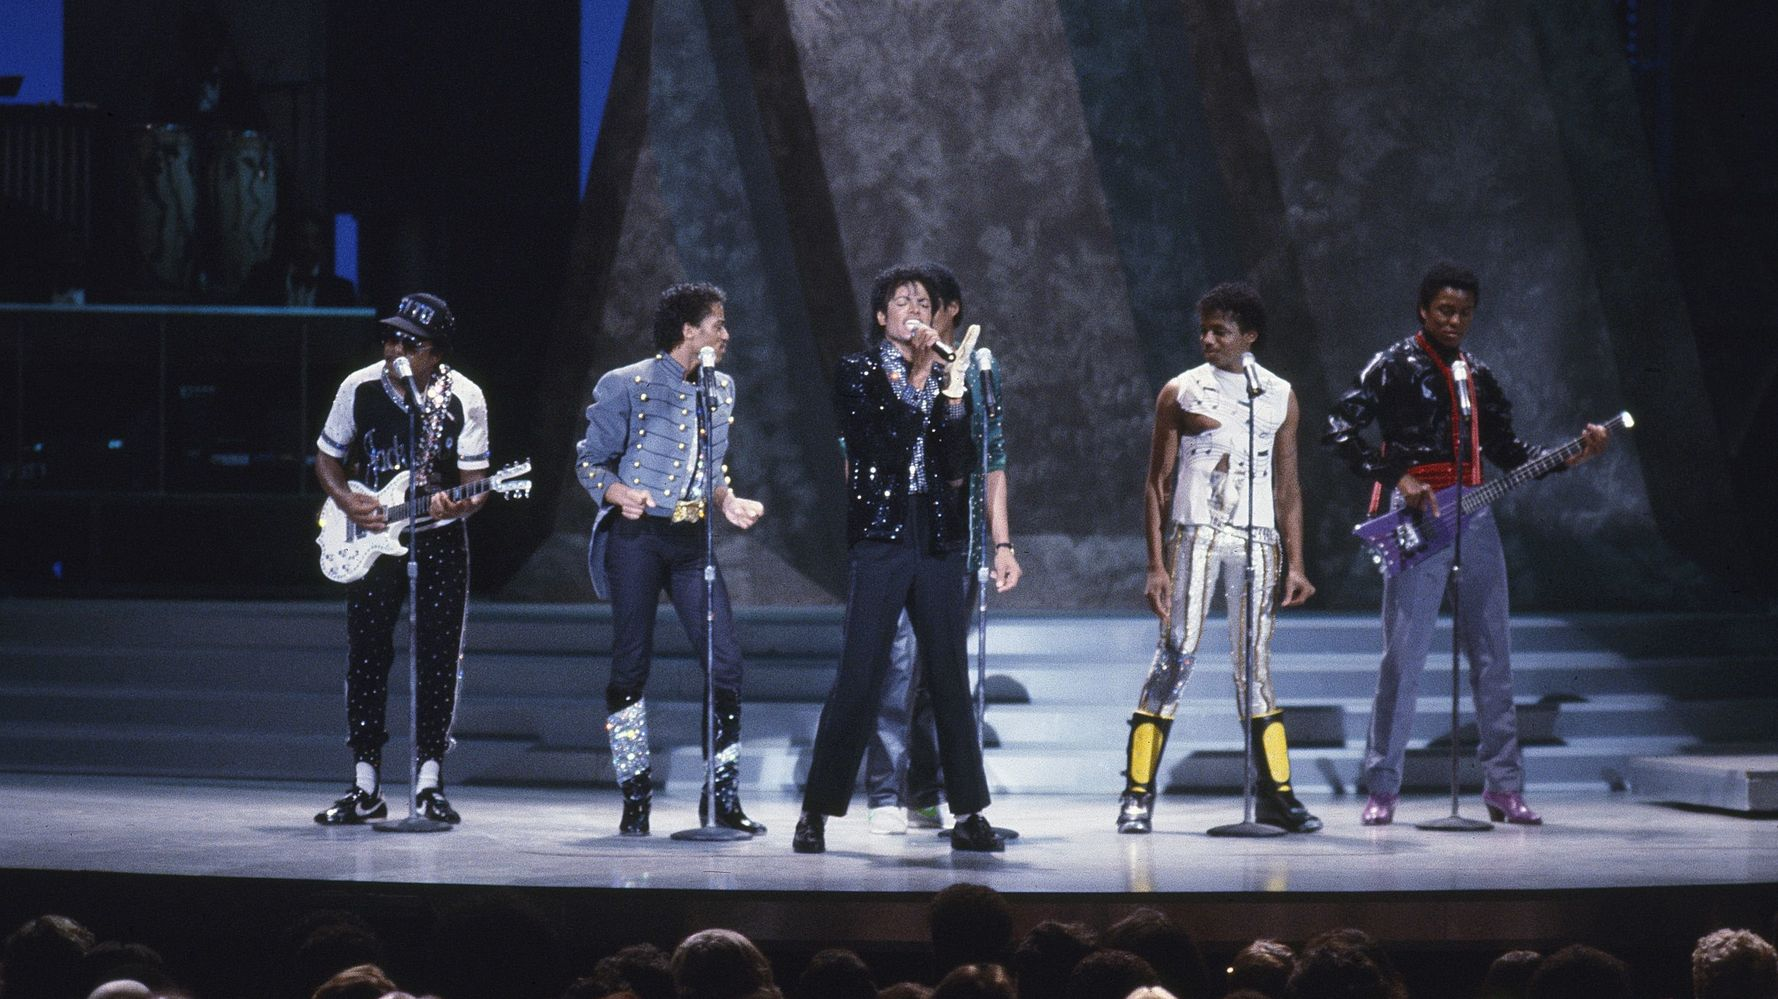 35 Years Ago Today, Michael Jackson Moonwalked On TV For The